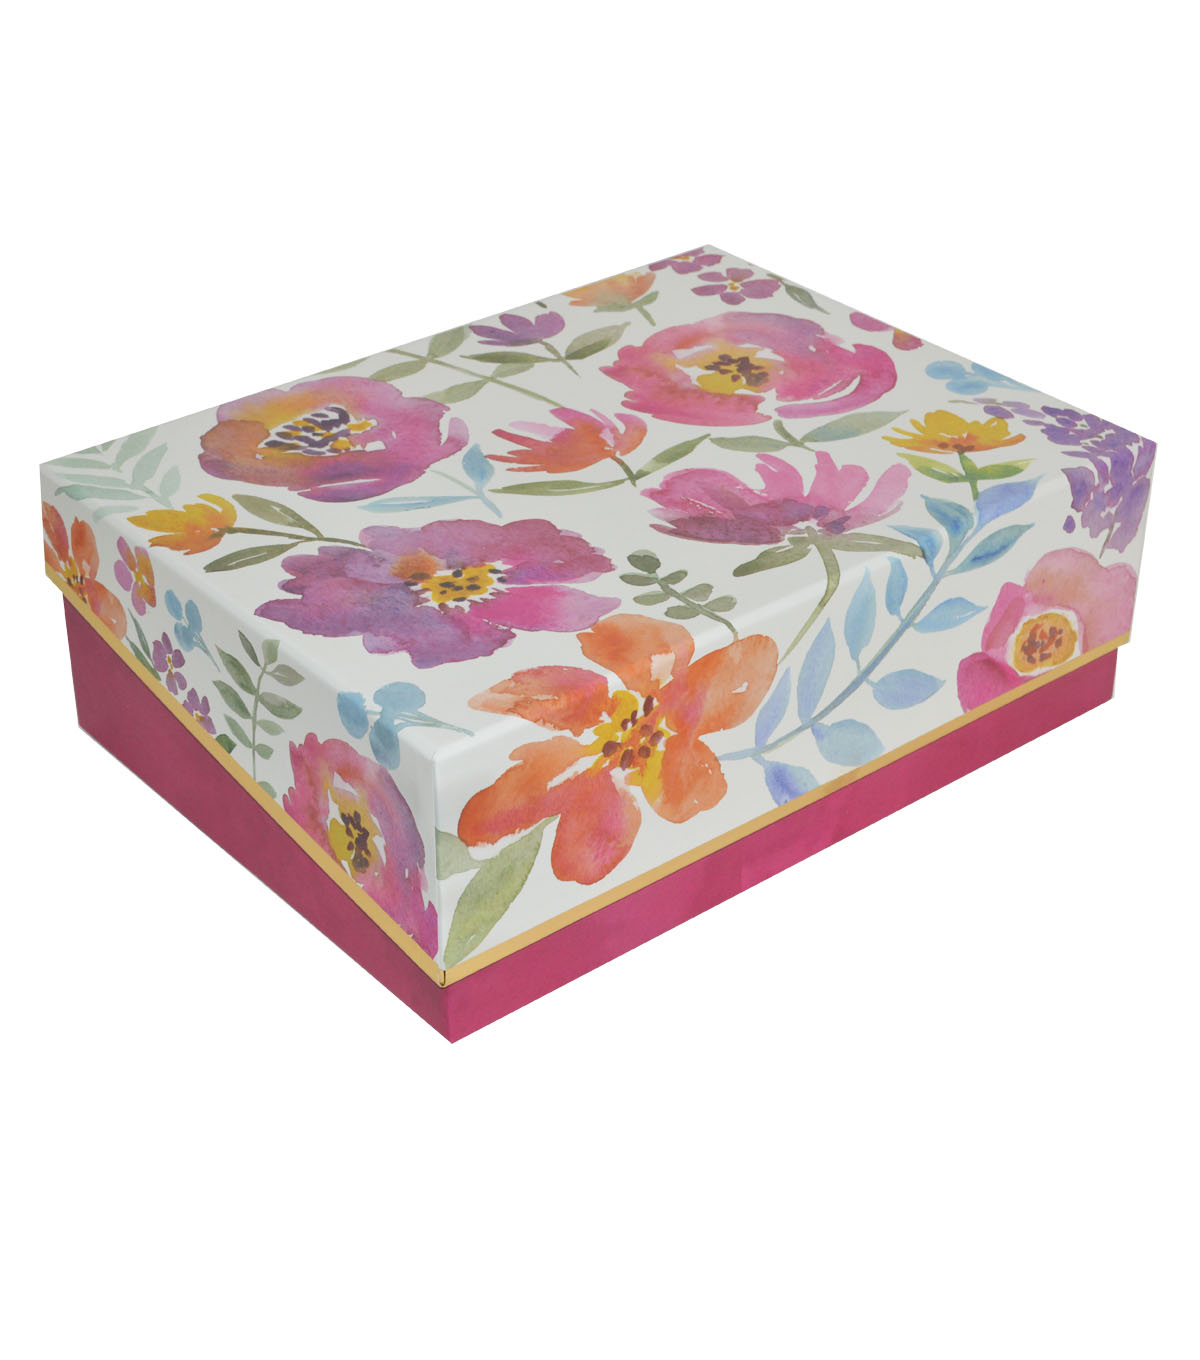 Organizing Essentials Large Storage Box-Tossed Floral